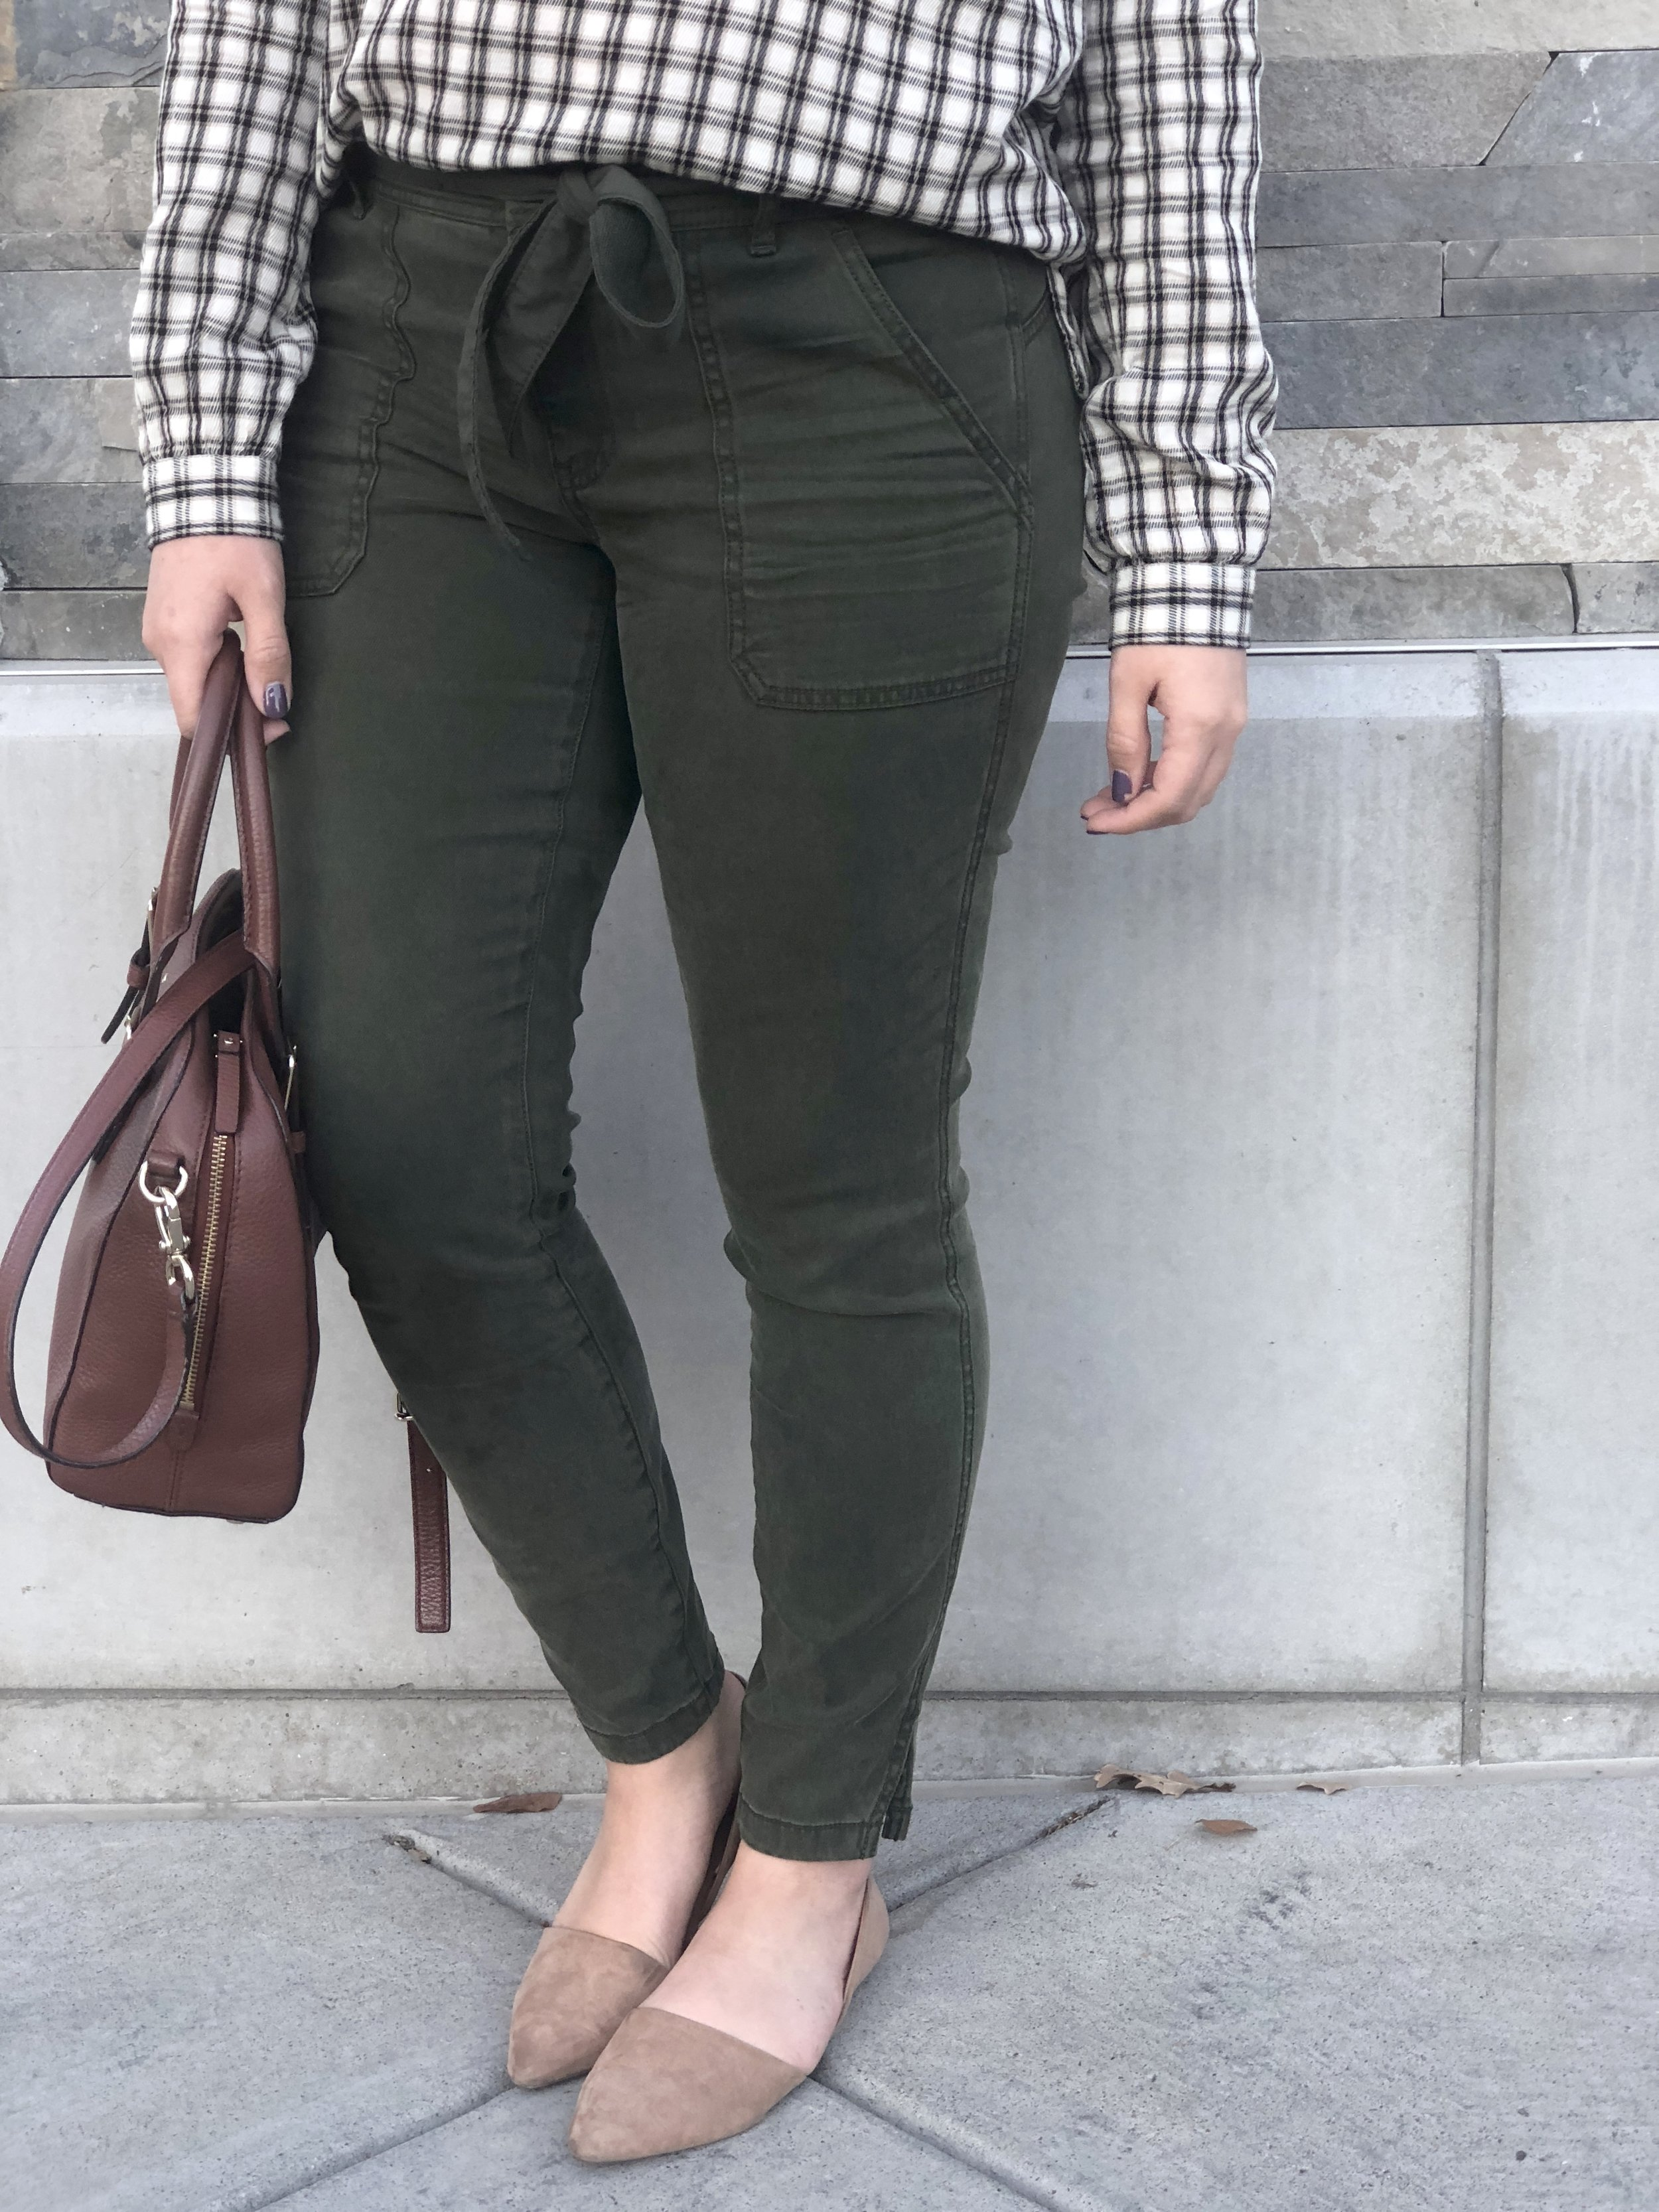 The most flattering chinos!They would be great for a business casual work setting as well!